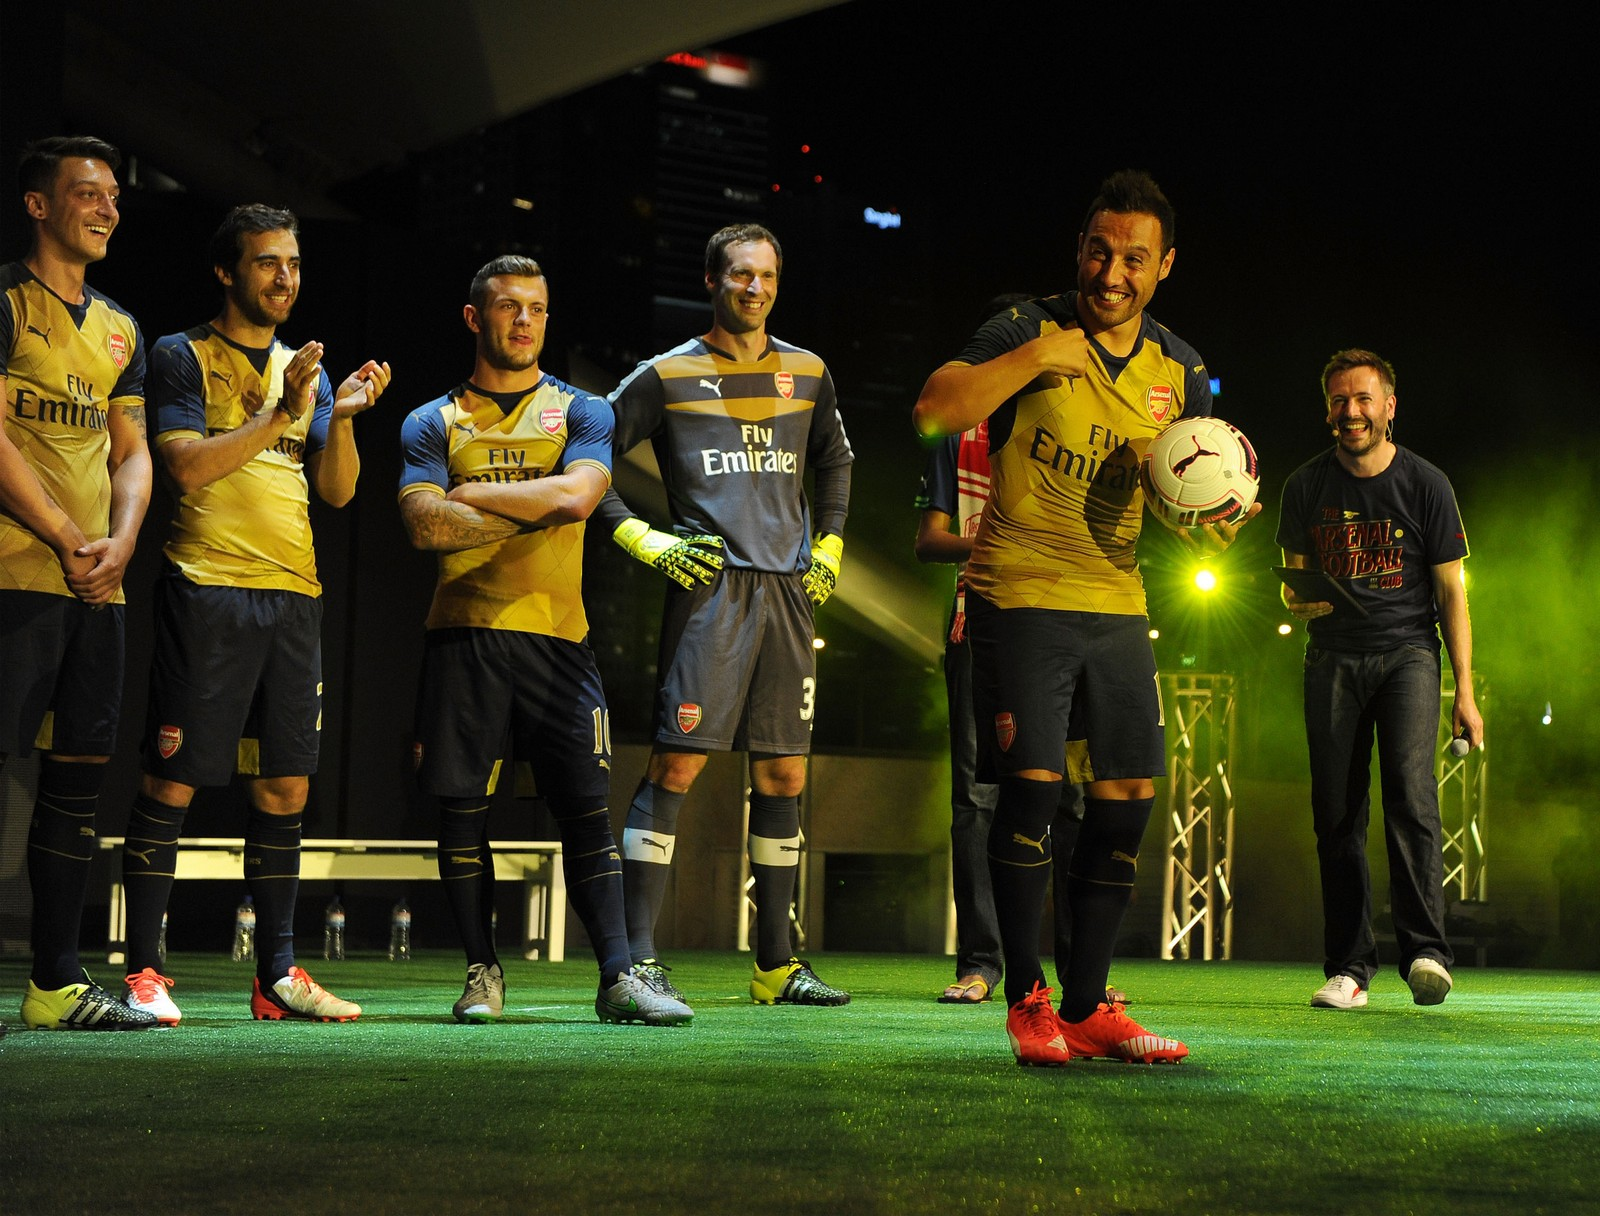 d7e2c57b1 Fans  cheers power unveil of Puma s Arsenal away kit